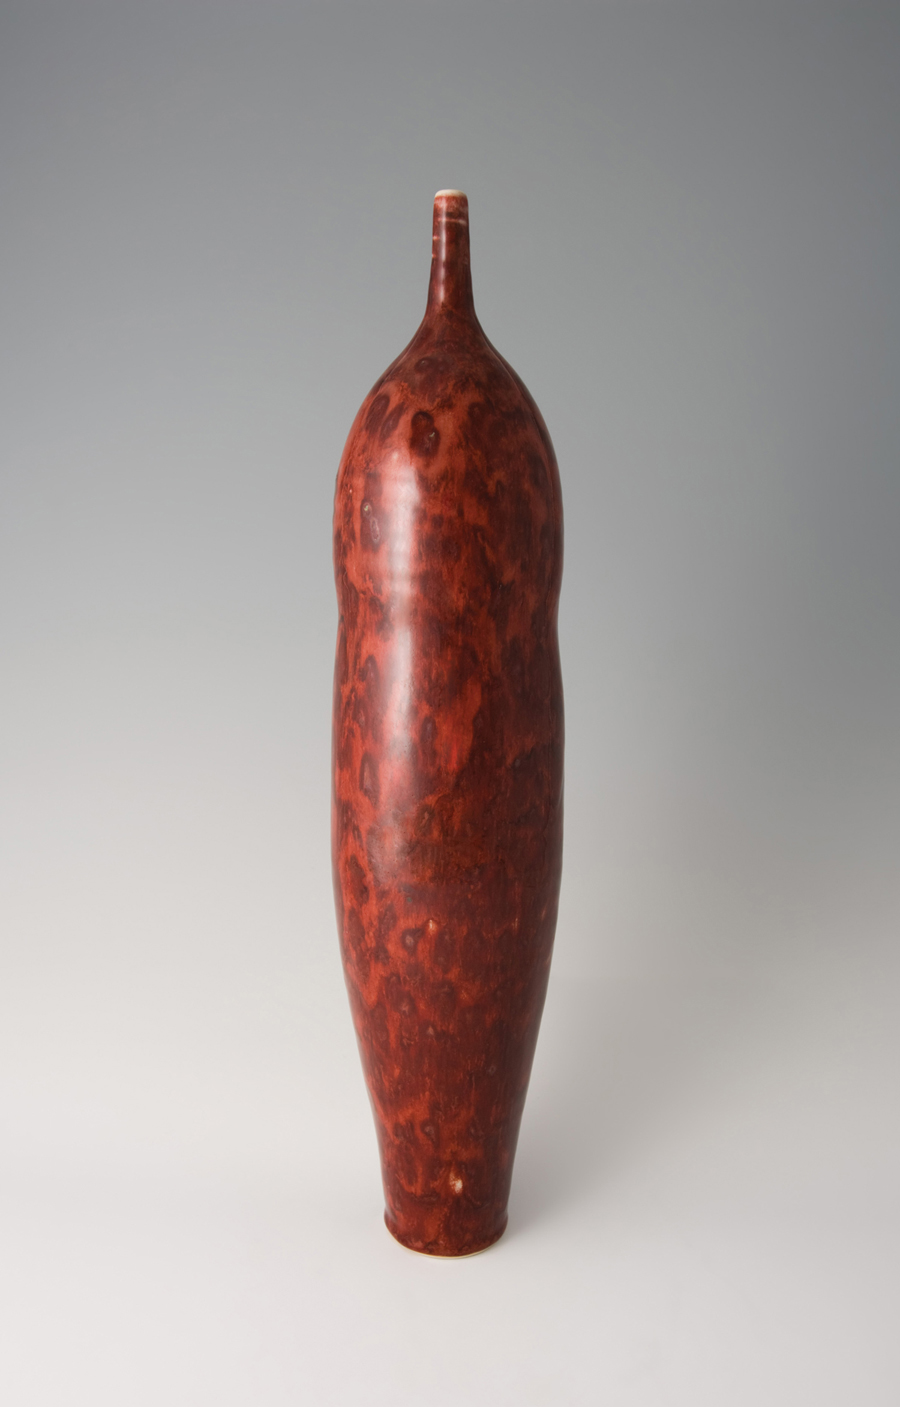 "Brother Thomas Bezanson  Tall Narrow Vase, Textured Copper Red Glaze  Porcelain 20.25 x 4.5 x 4.5"" TH815B"